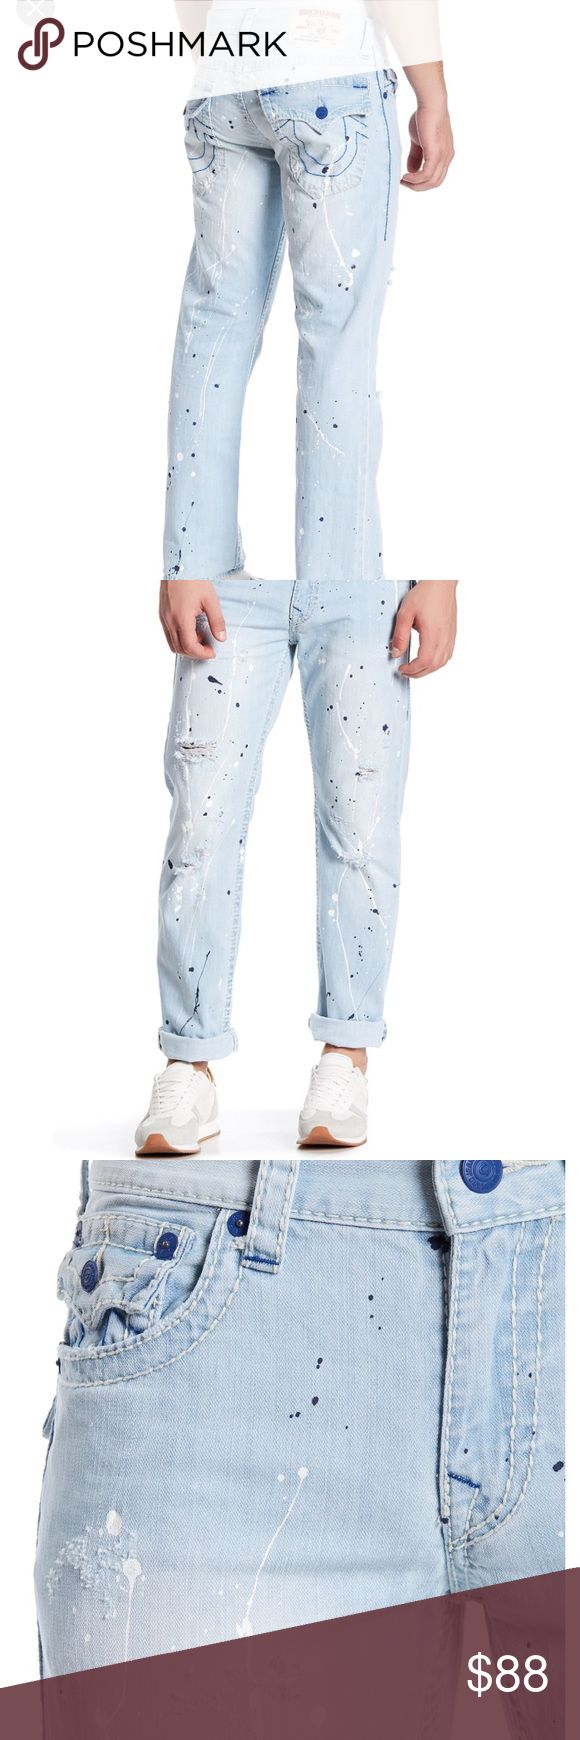 True Religion Jeans Paint Splattered Jeans True Religion Jeans Straight